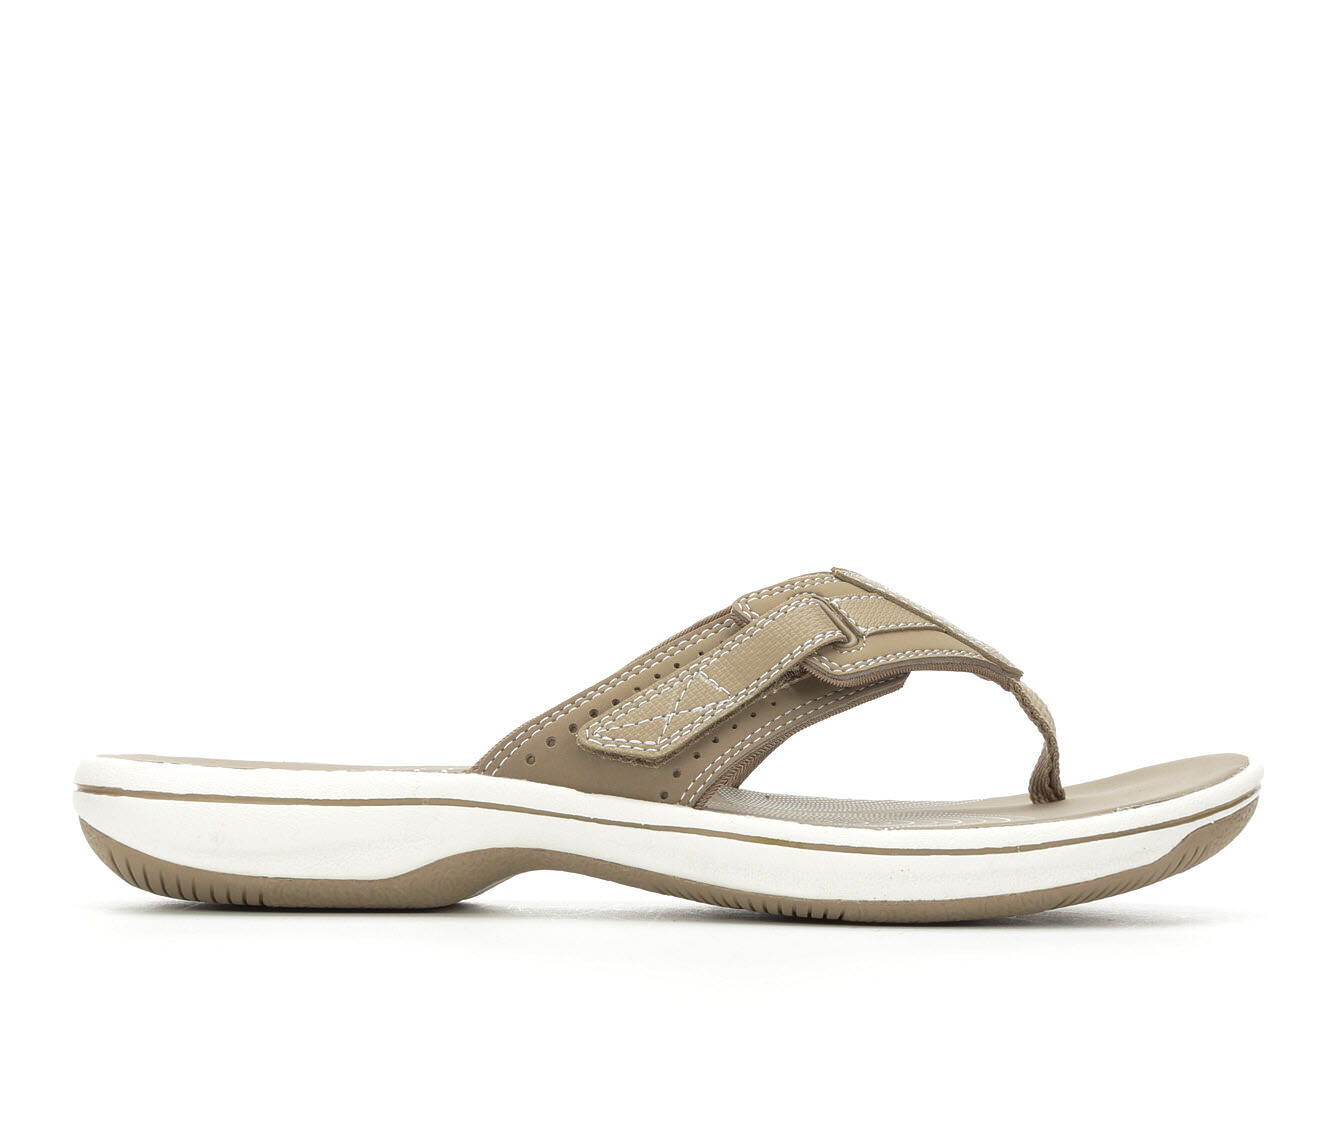 fast delivery avialable Women's Clarks Brinkley Reef Sandals Sand